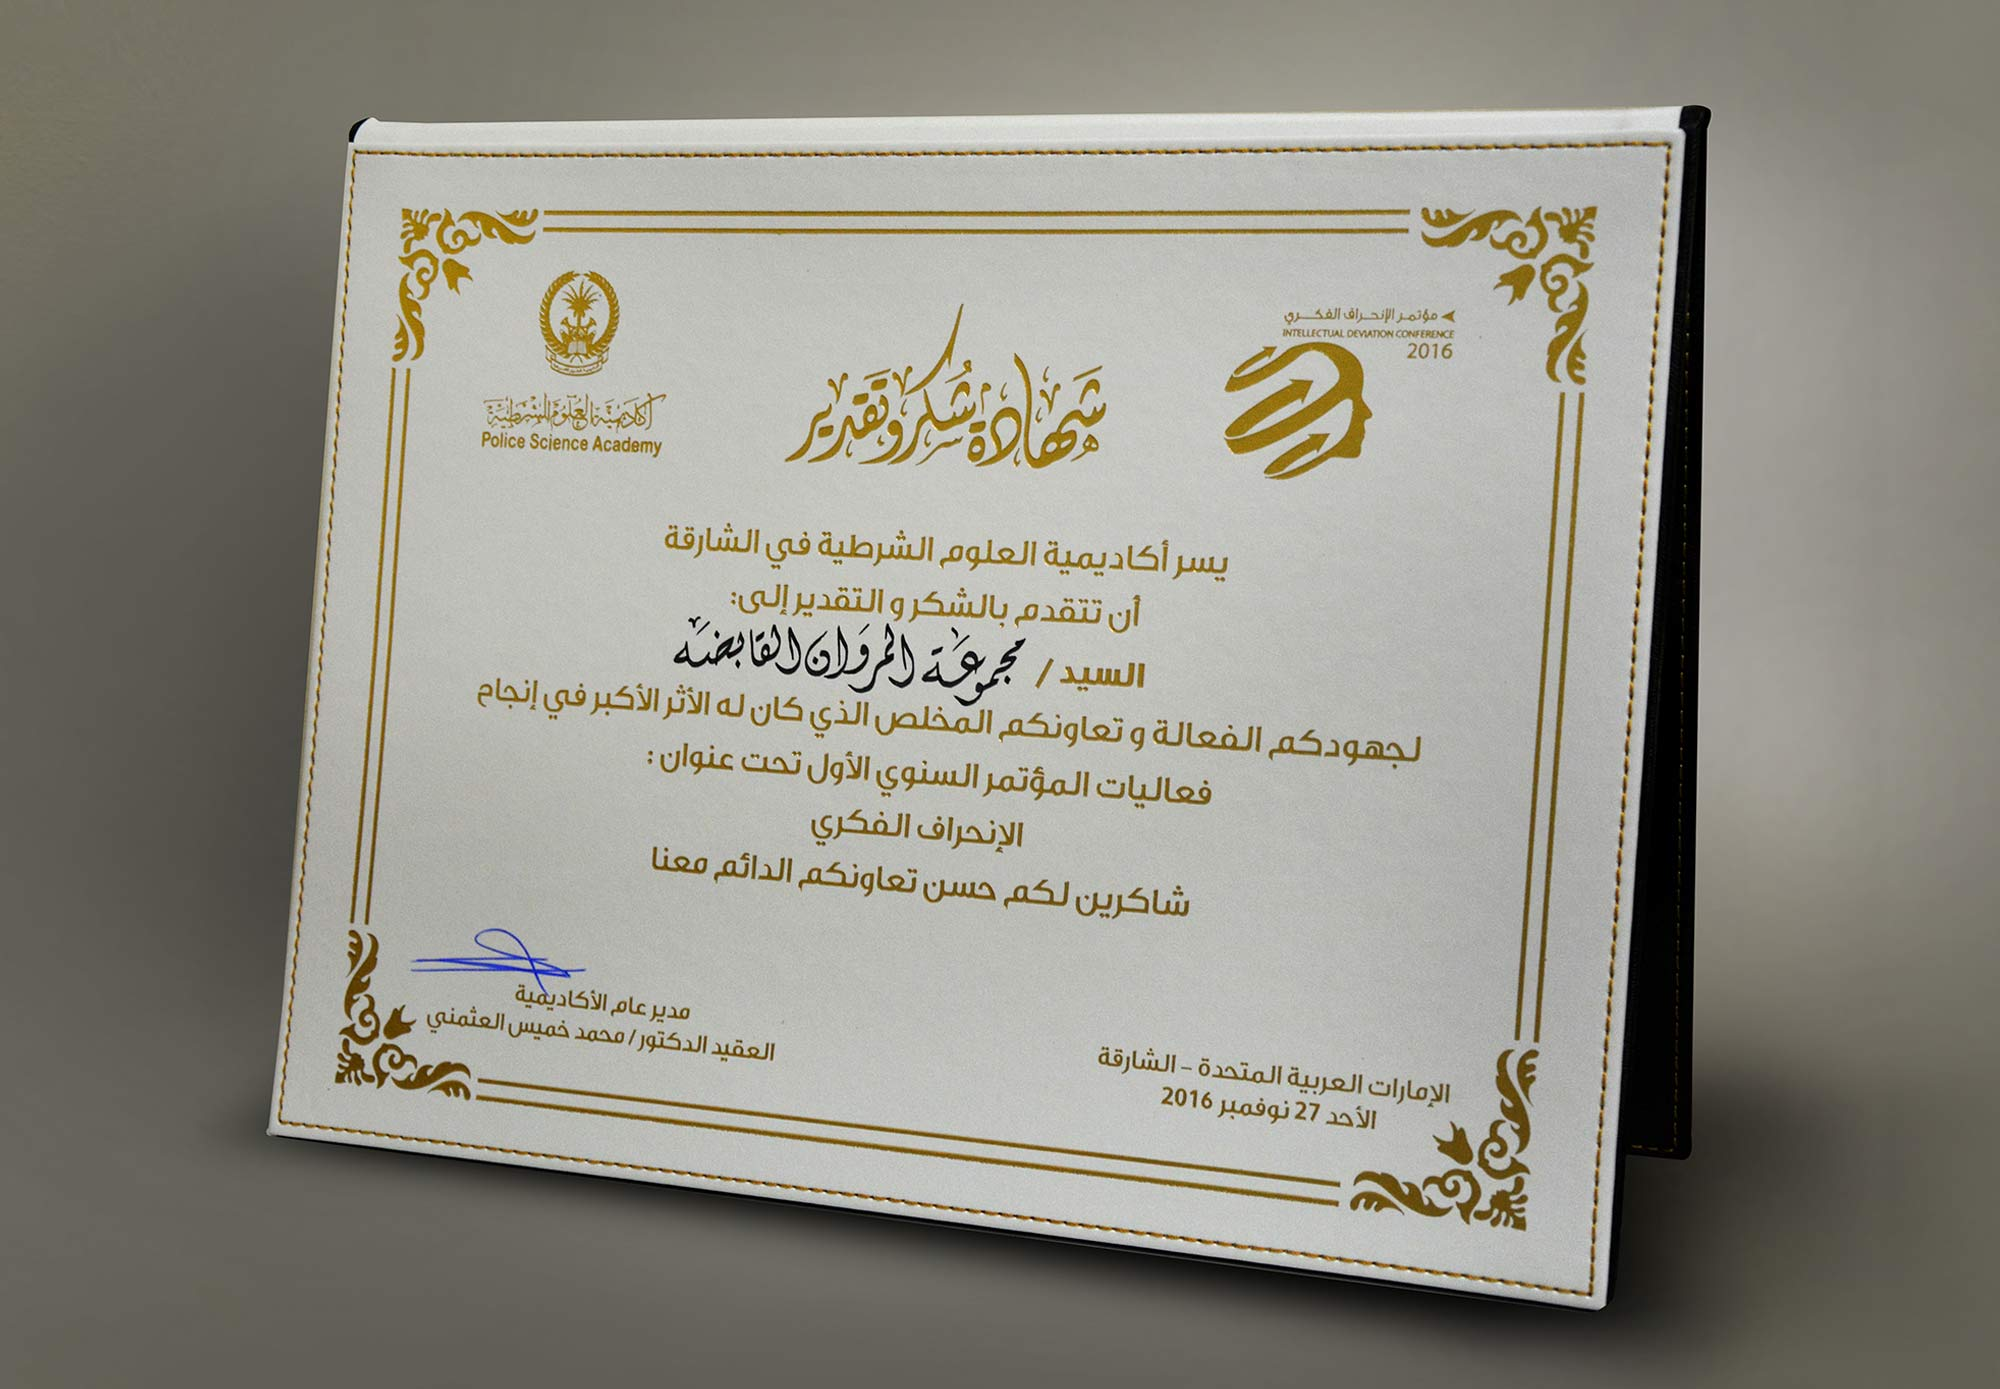 Certificate of Appreciation from Sharjah's Police Science Academy